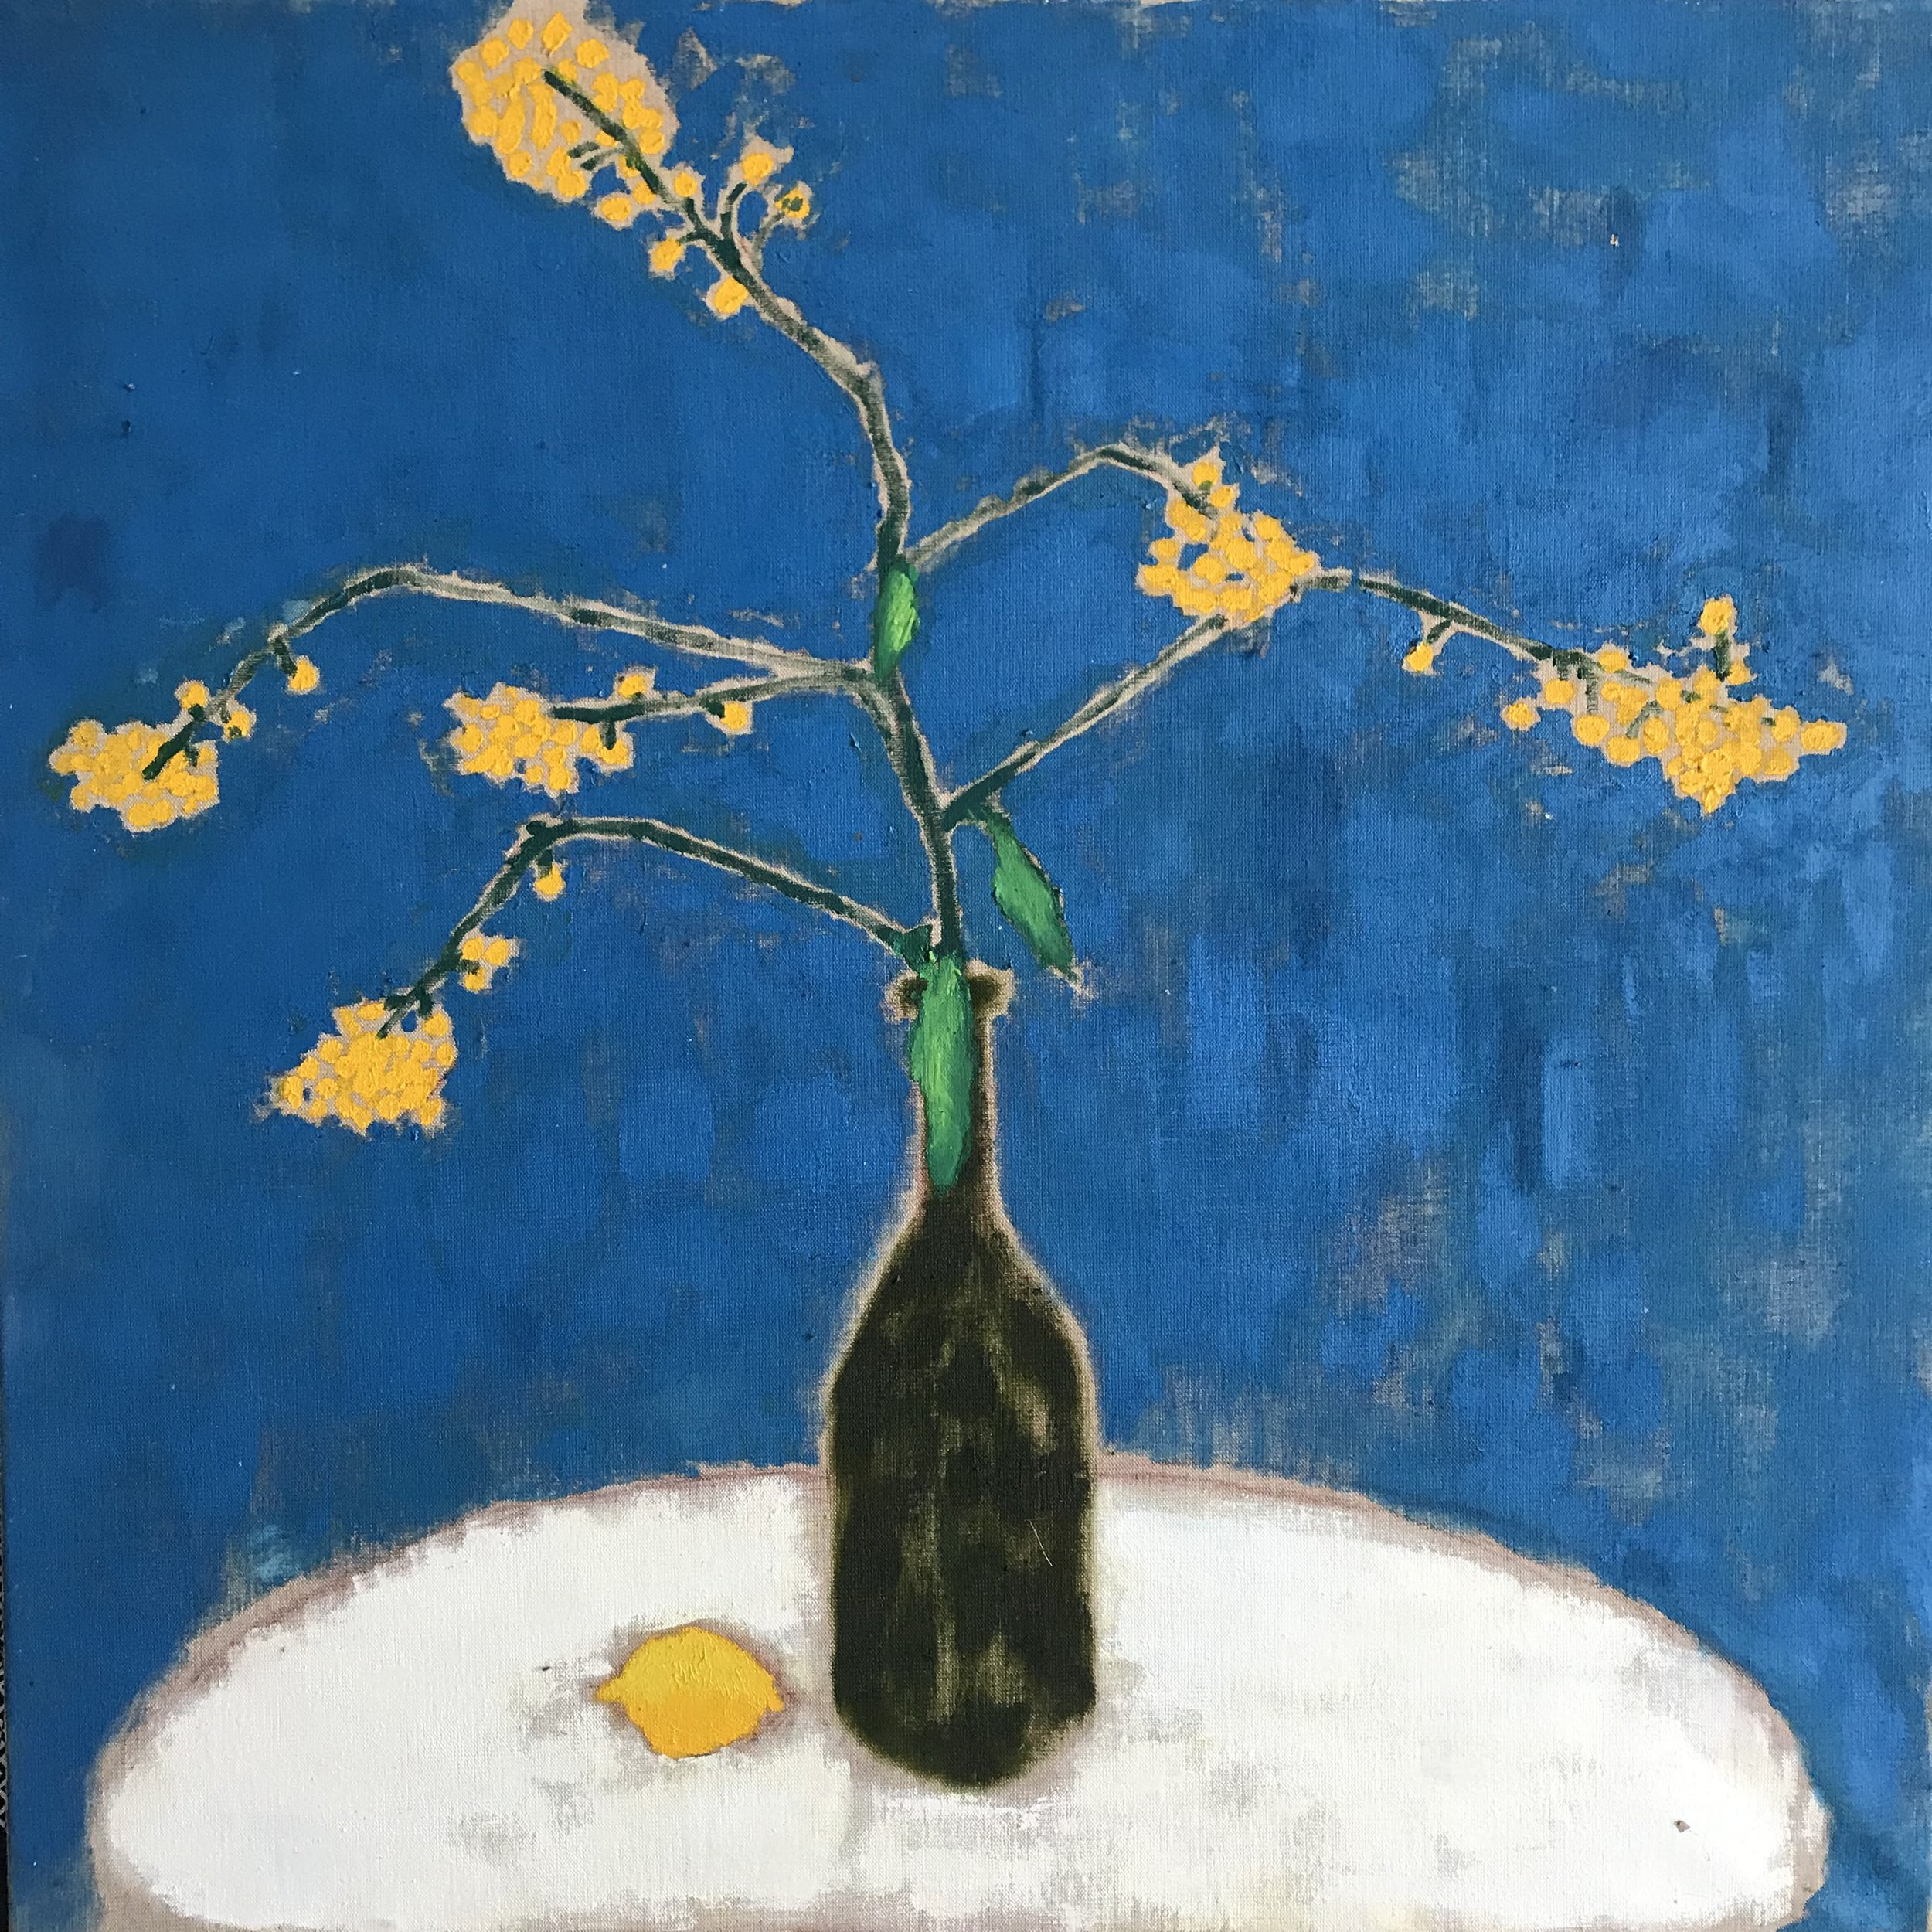 "'Lemon & Friends'    Original Oil Work on Linen, 32"" x 32"""